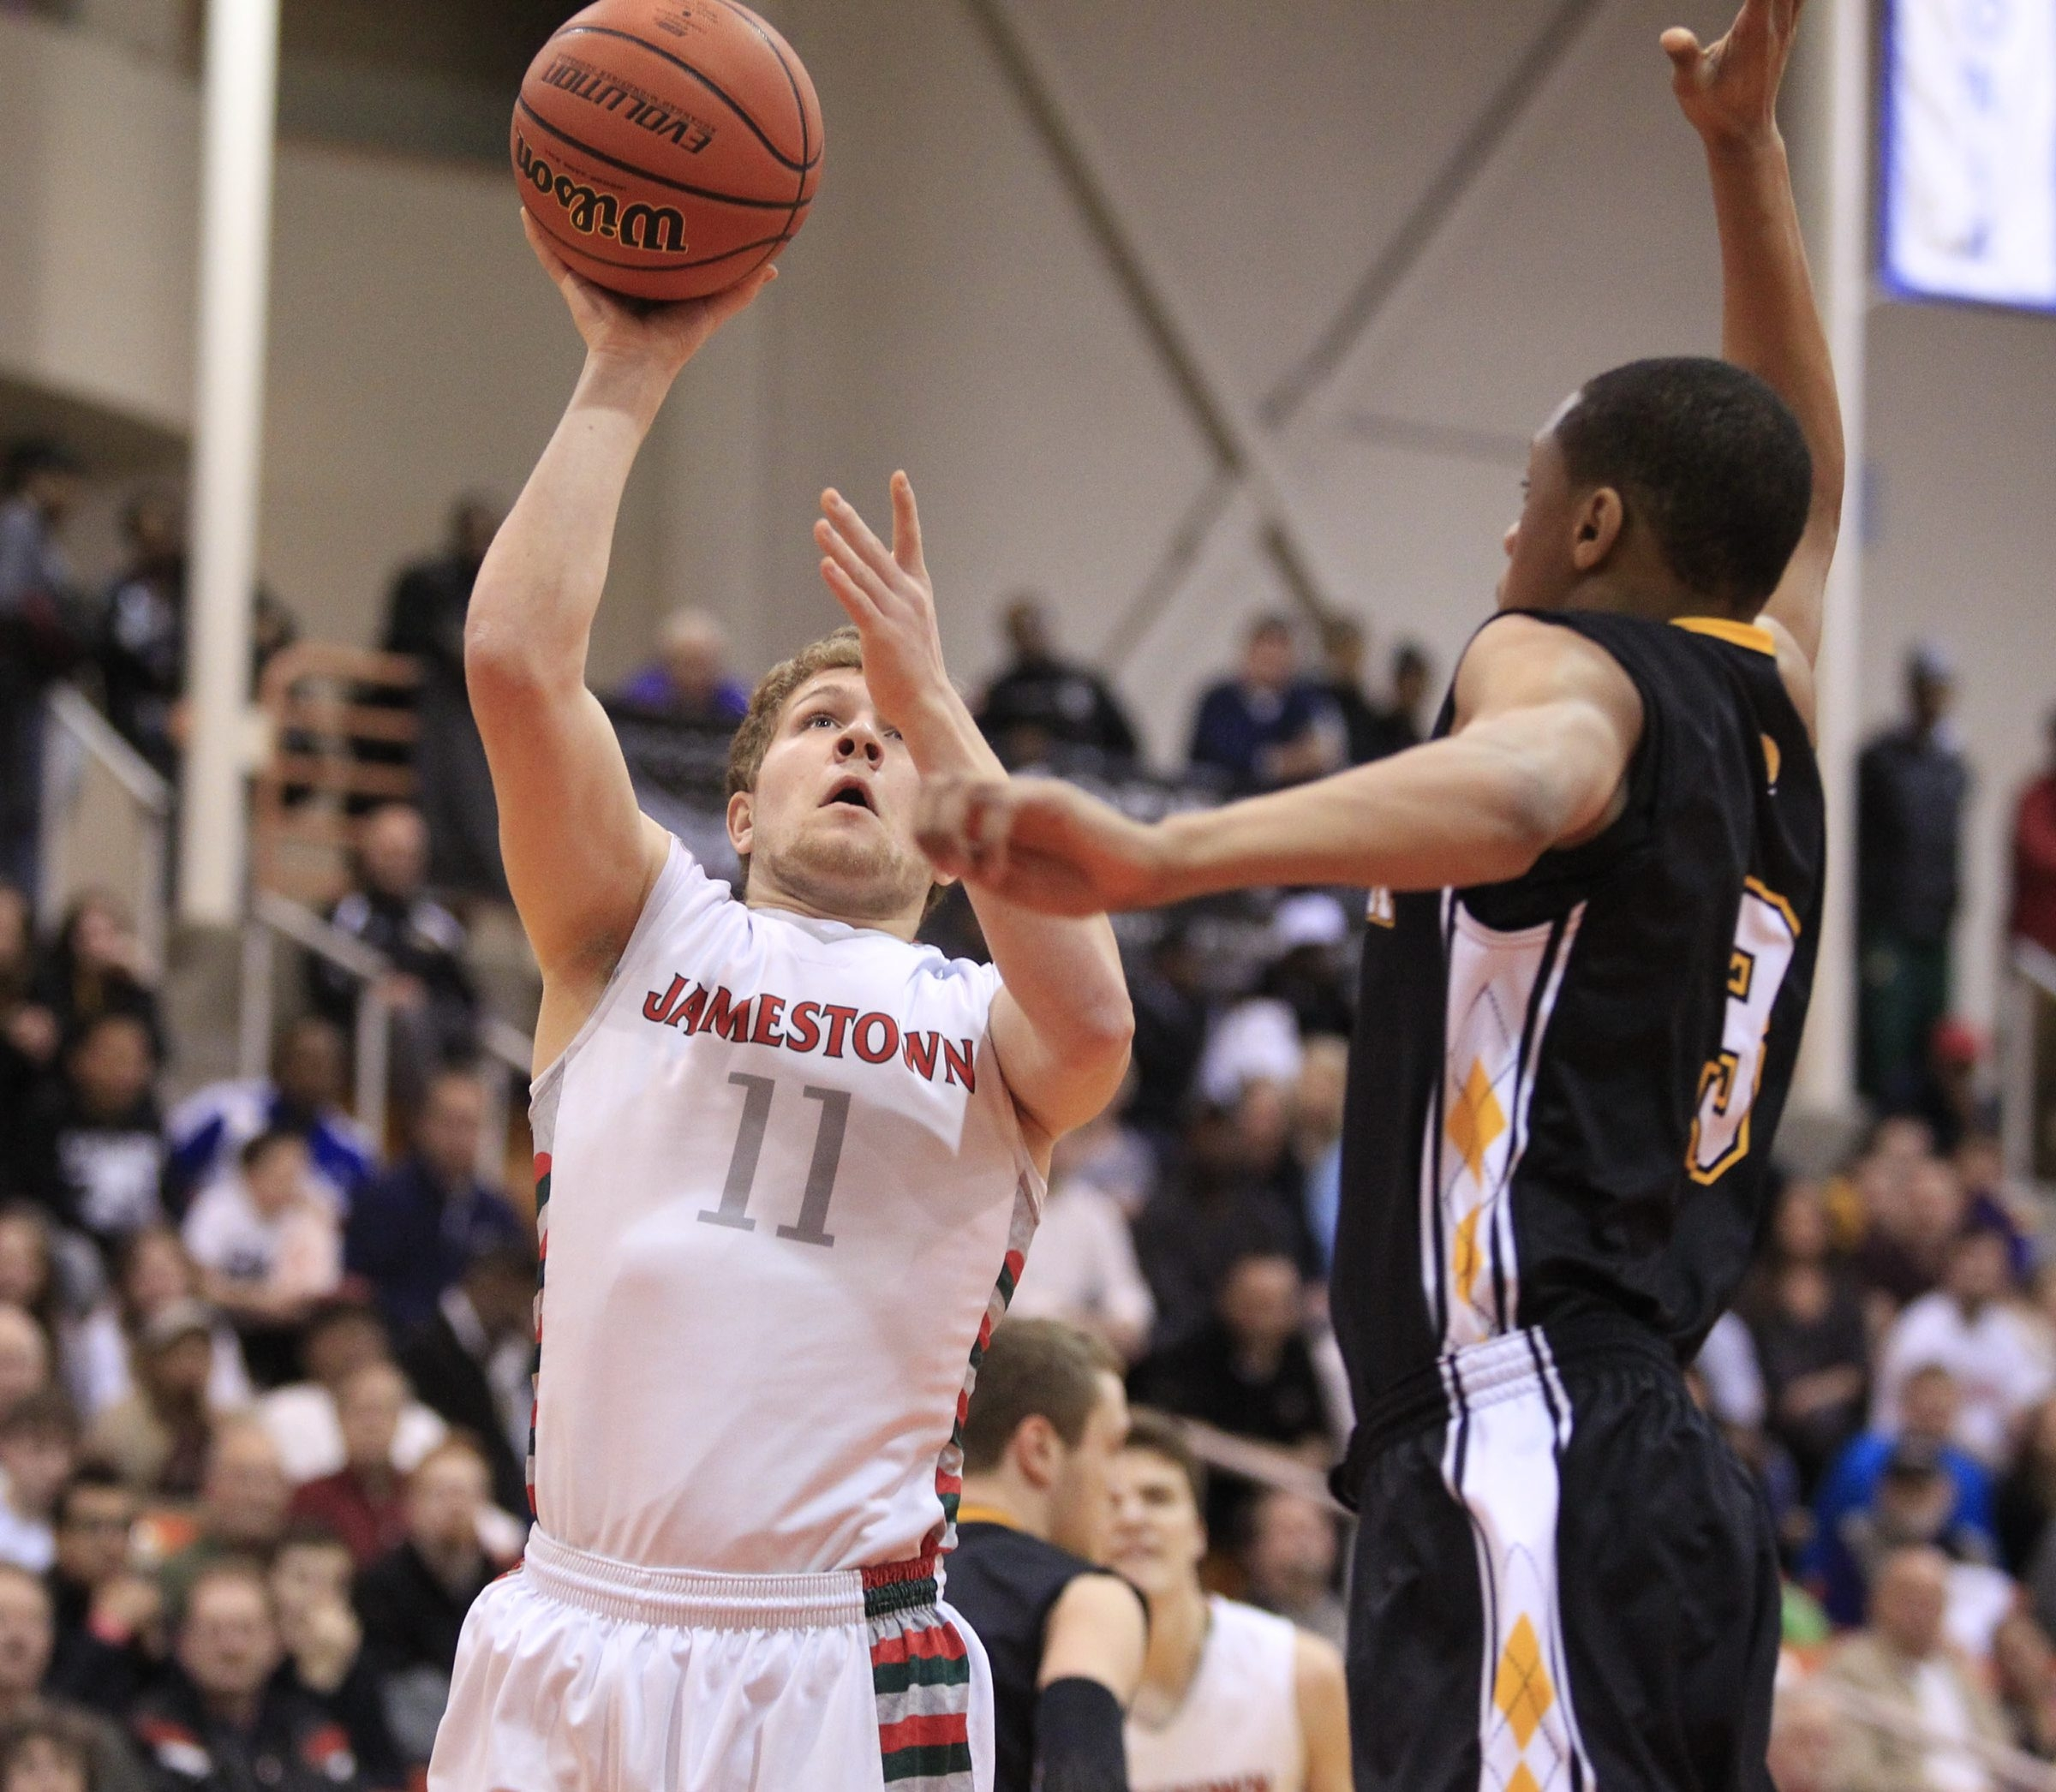 Jamestown junior guard Zack Panebianco was a clutch performer in the Red Raiders' upset of Green-Athena in the Class AA regionals.